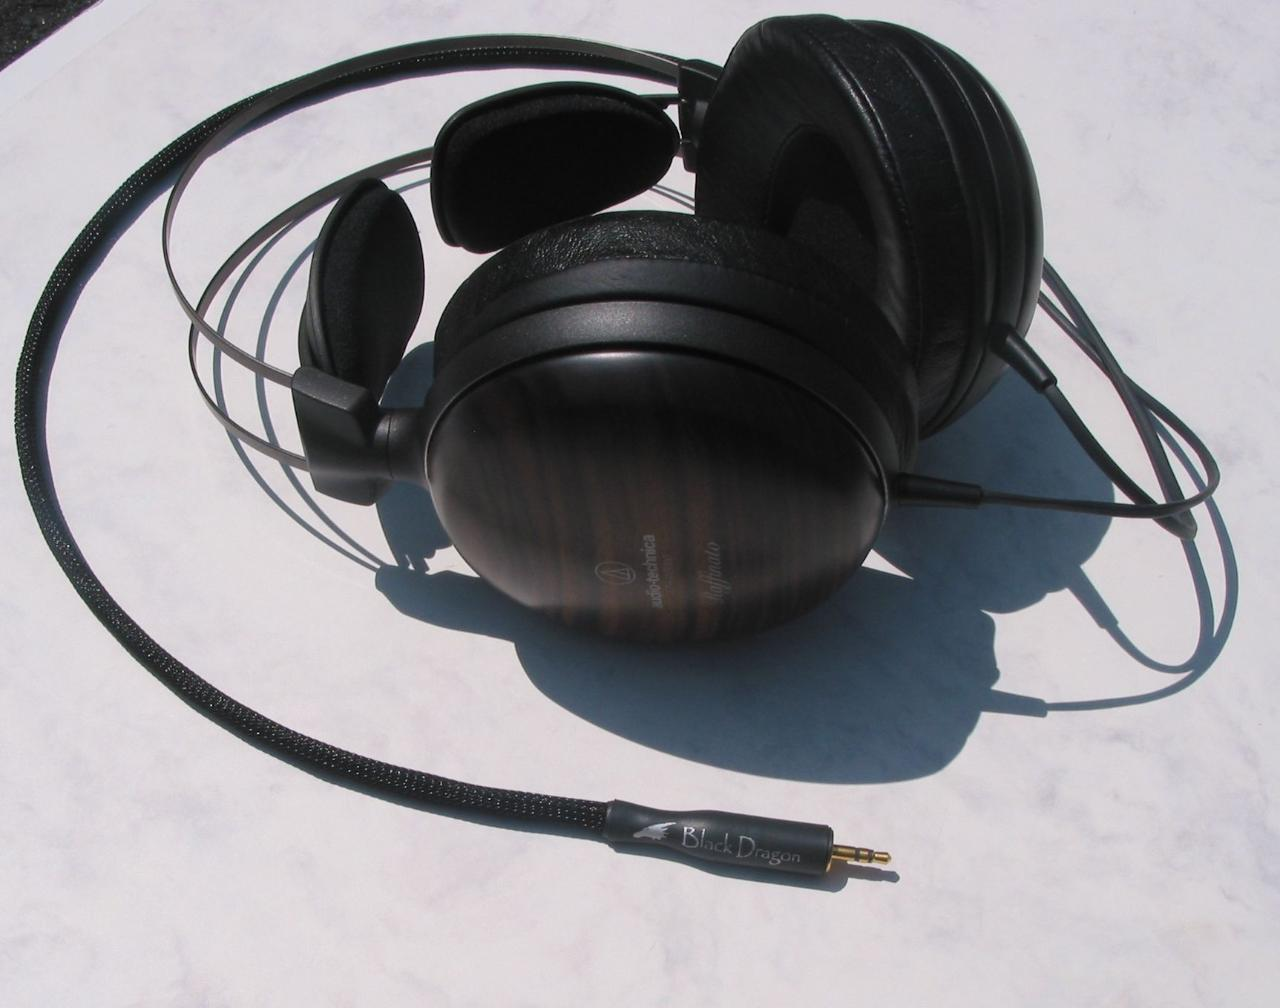 Audio Technica with Moon Audio Black Dragon V1 Headphone Cable - the 'original black dragon...